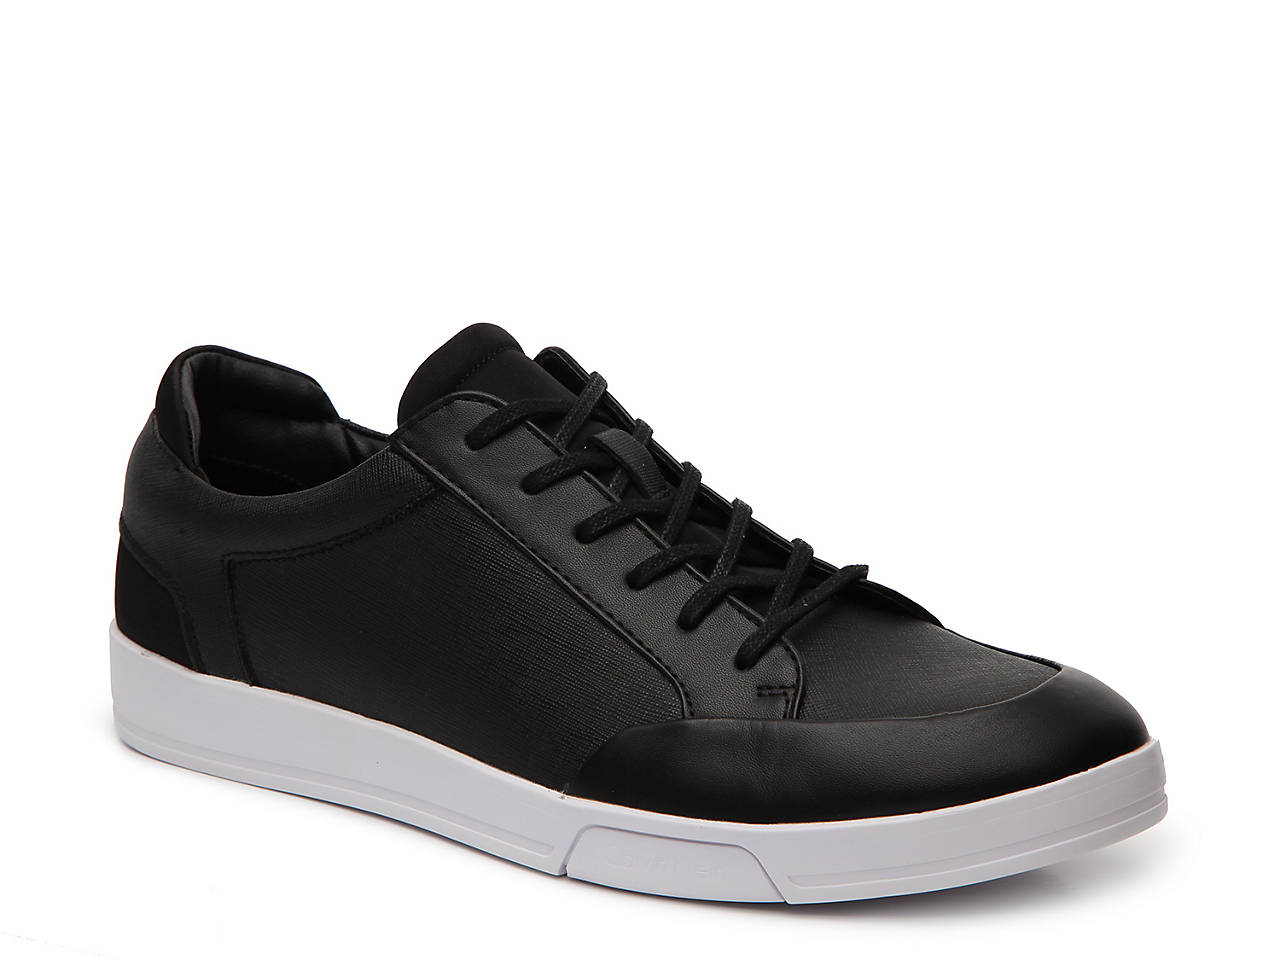 Calvin Klein Baldwin (White) Mens Shoes Shopping Online With Mastercard Amazing Price Cheap Online Buy Cheap Clearance Store 8GlbWcMaIV